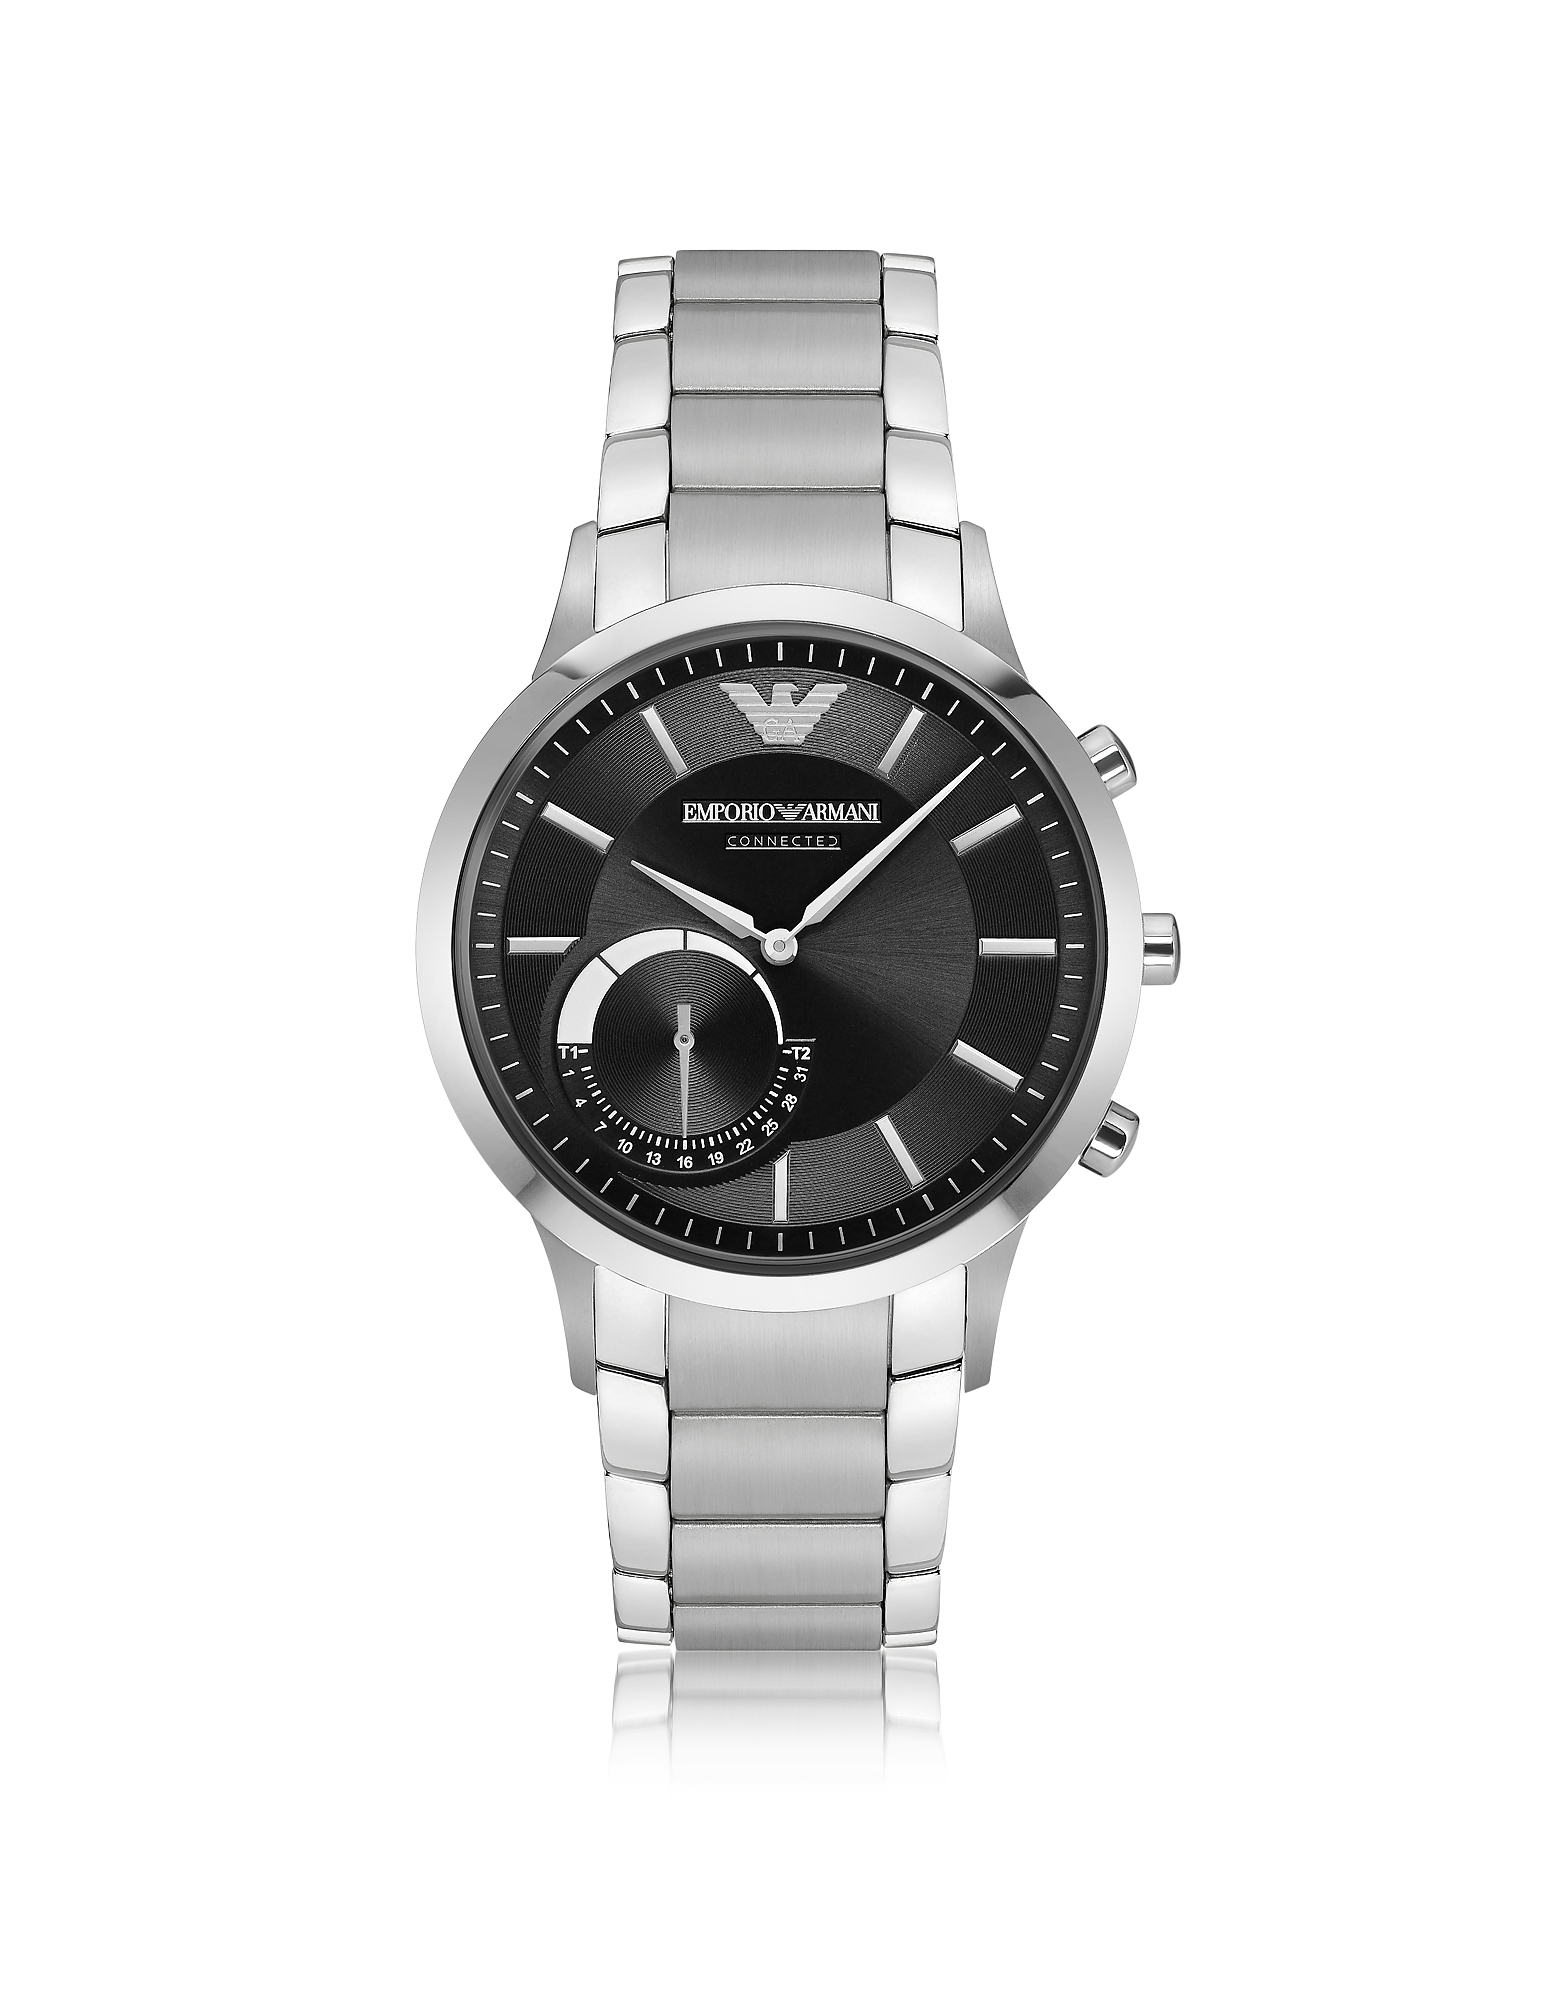 Emporio Armani Men's Watches, Connected Satin Stainless Steel Hybrid Men's Smartwatch